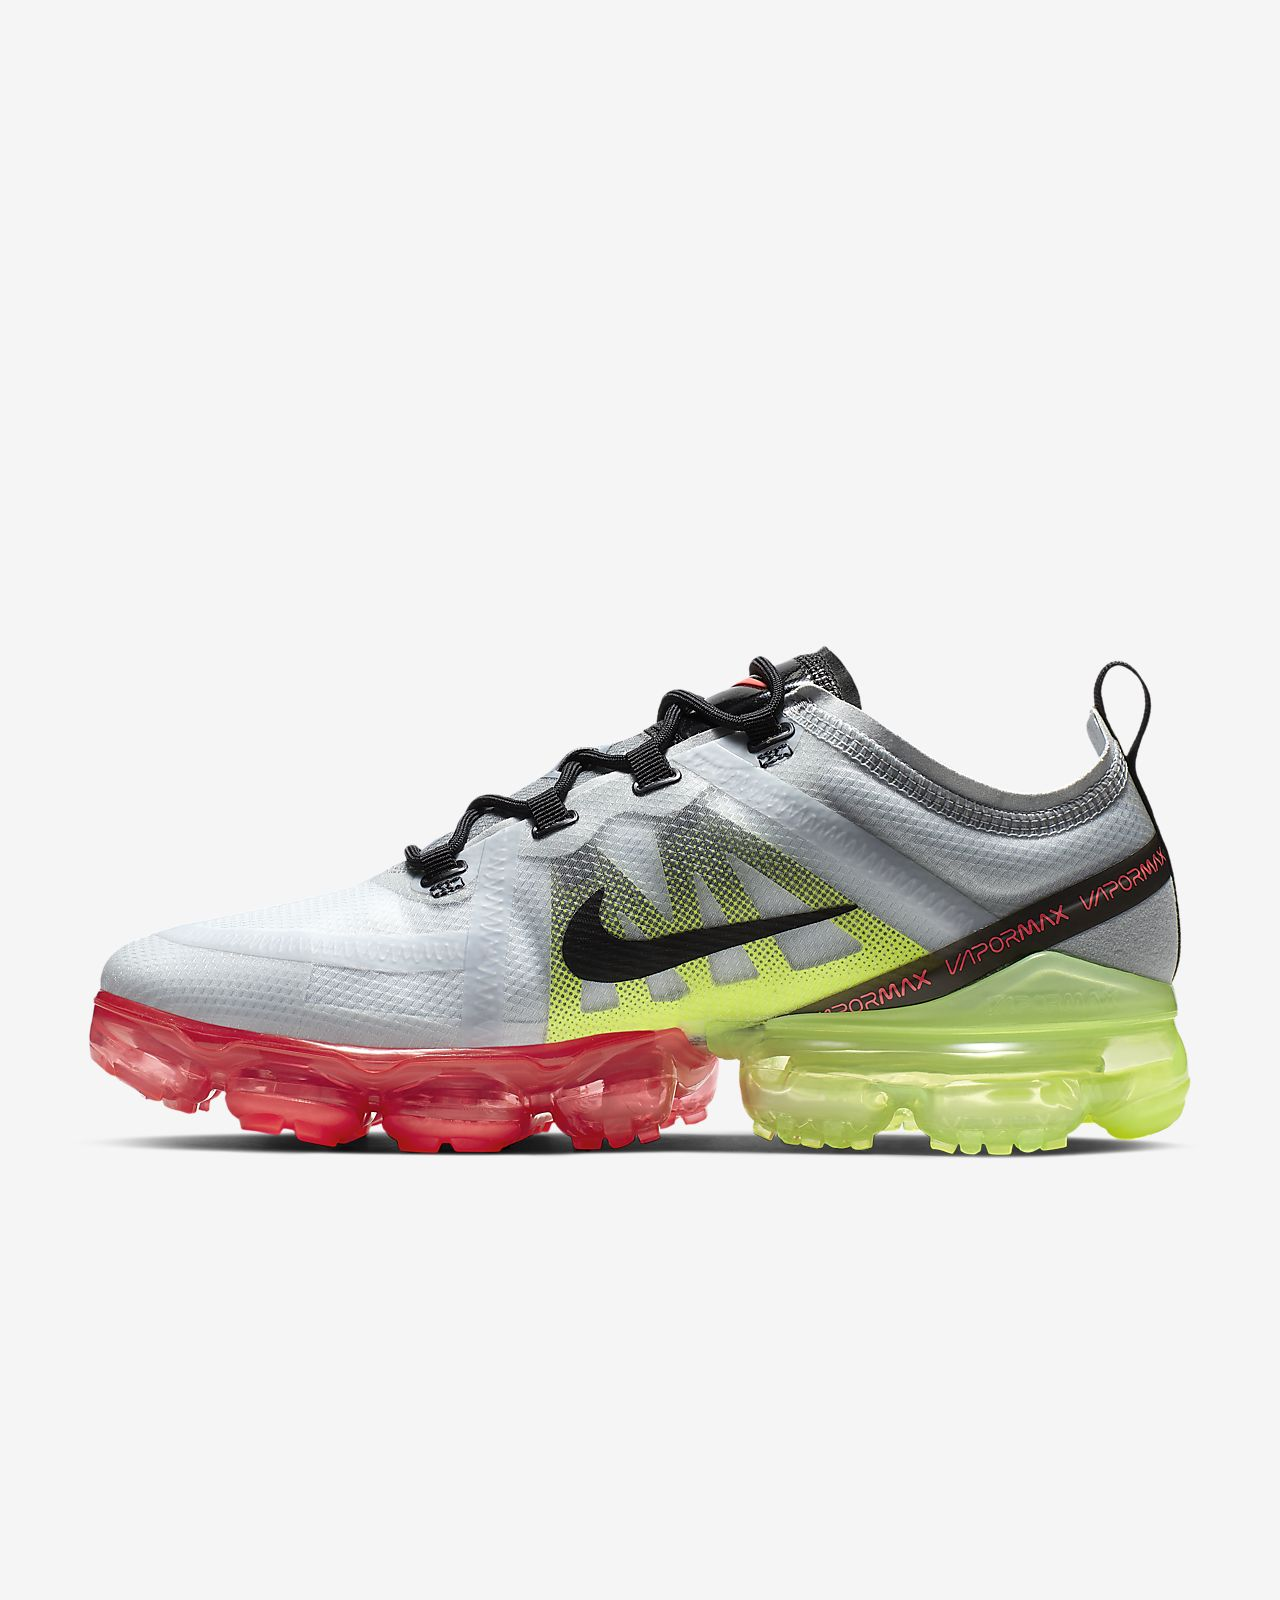 9c1b85da Low Resolution Nike Air VaporMax 2019 Zapatillas Nike Air VaporMax 2019  Zapatillas